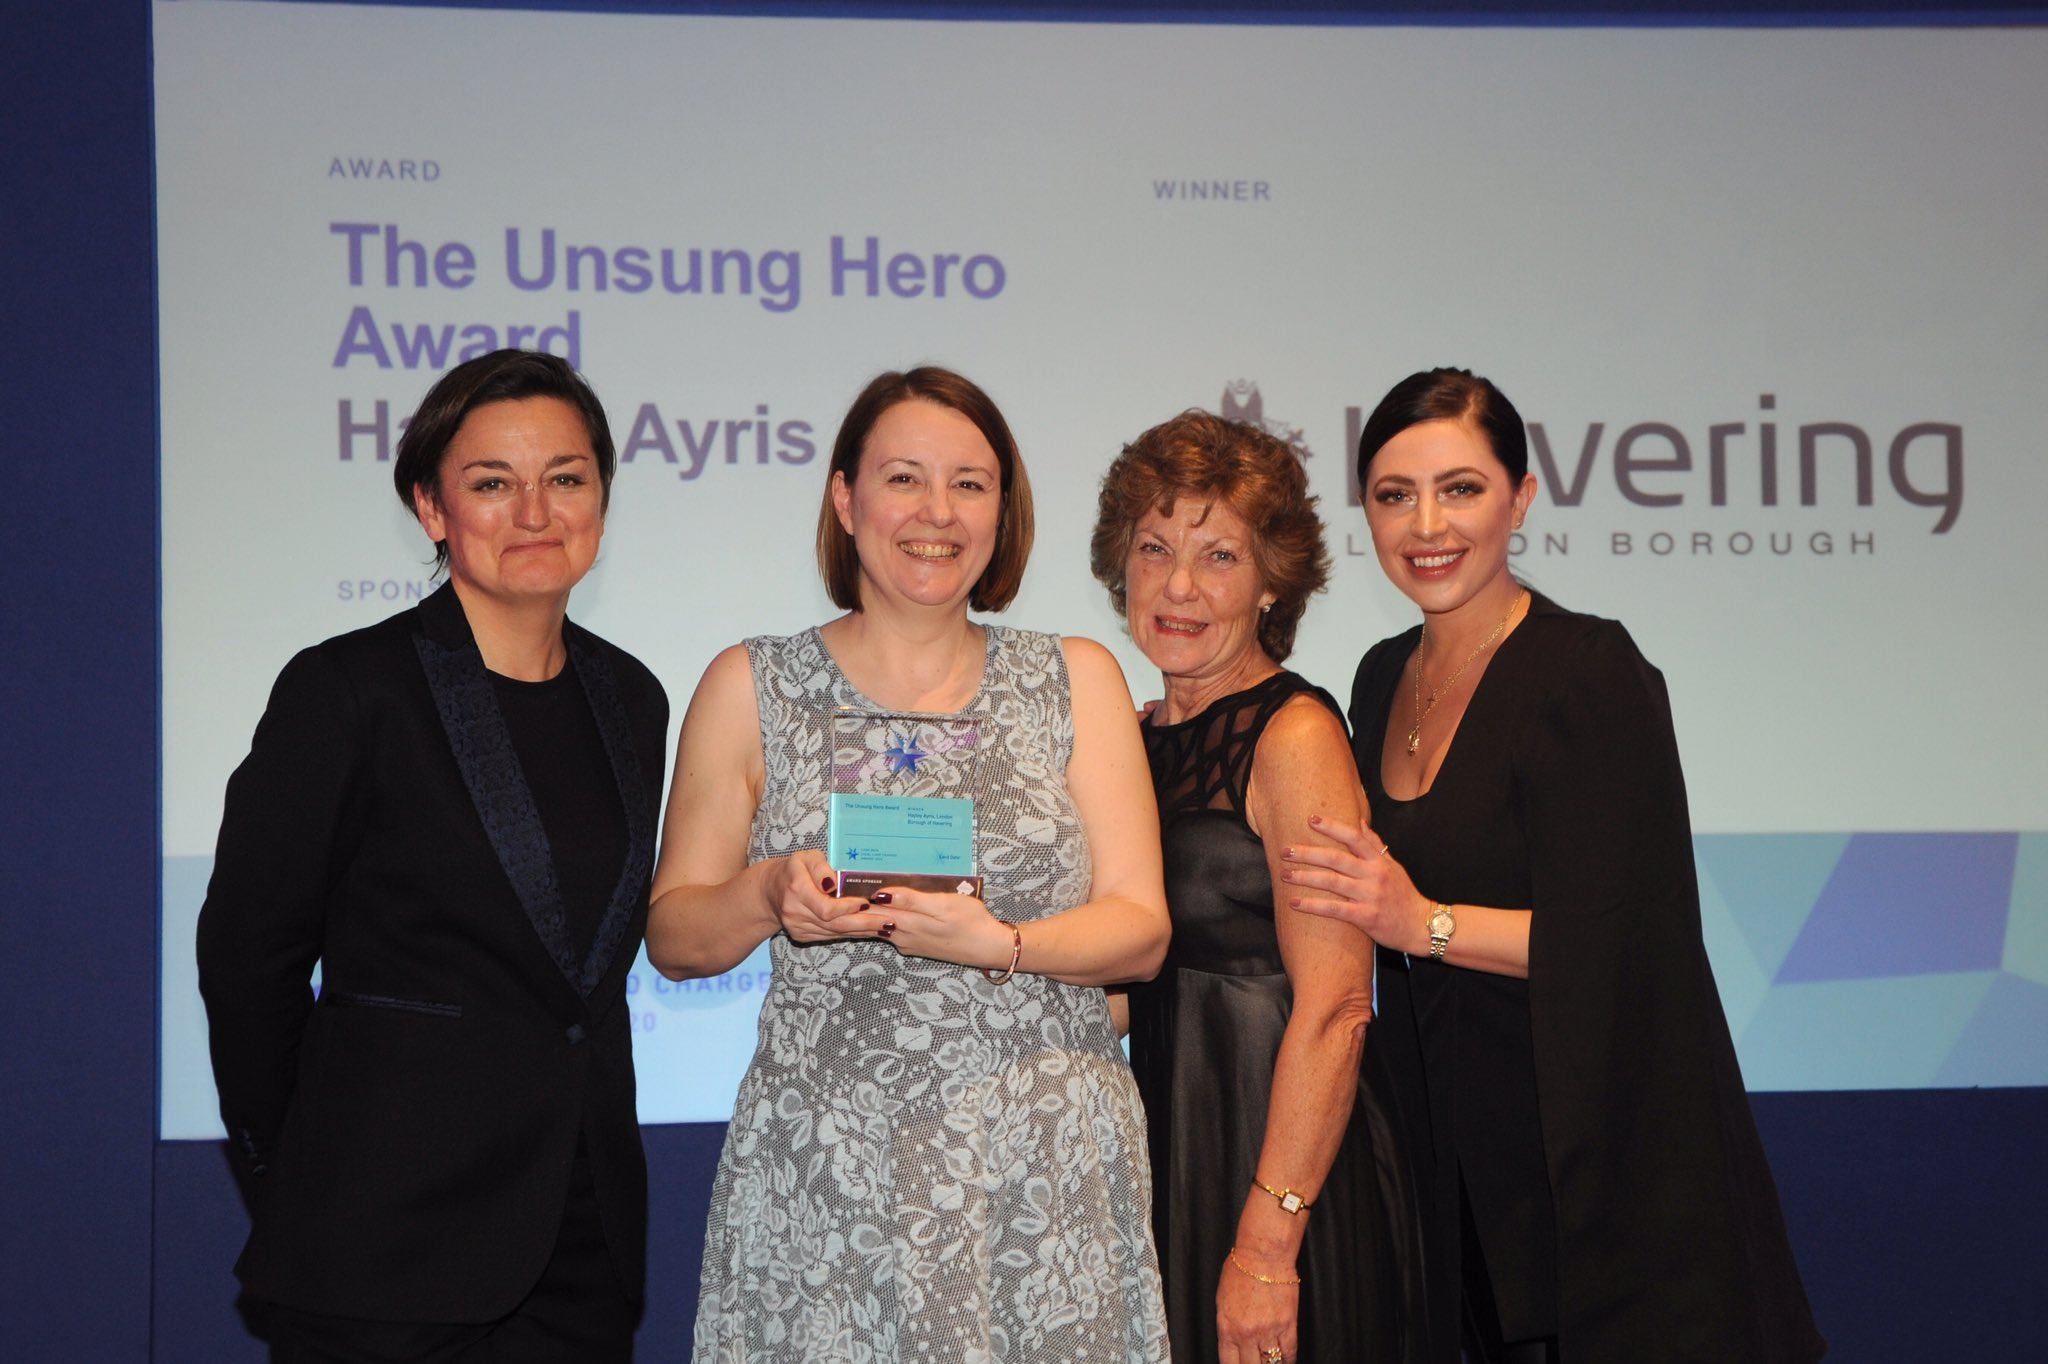 Hayley Ayris receives her Unsung Hero Award